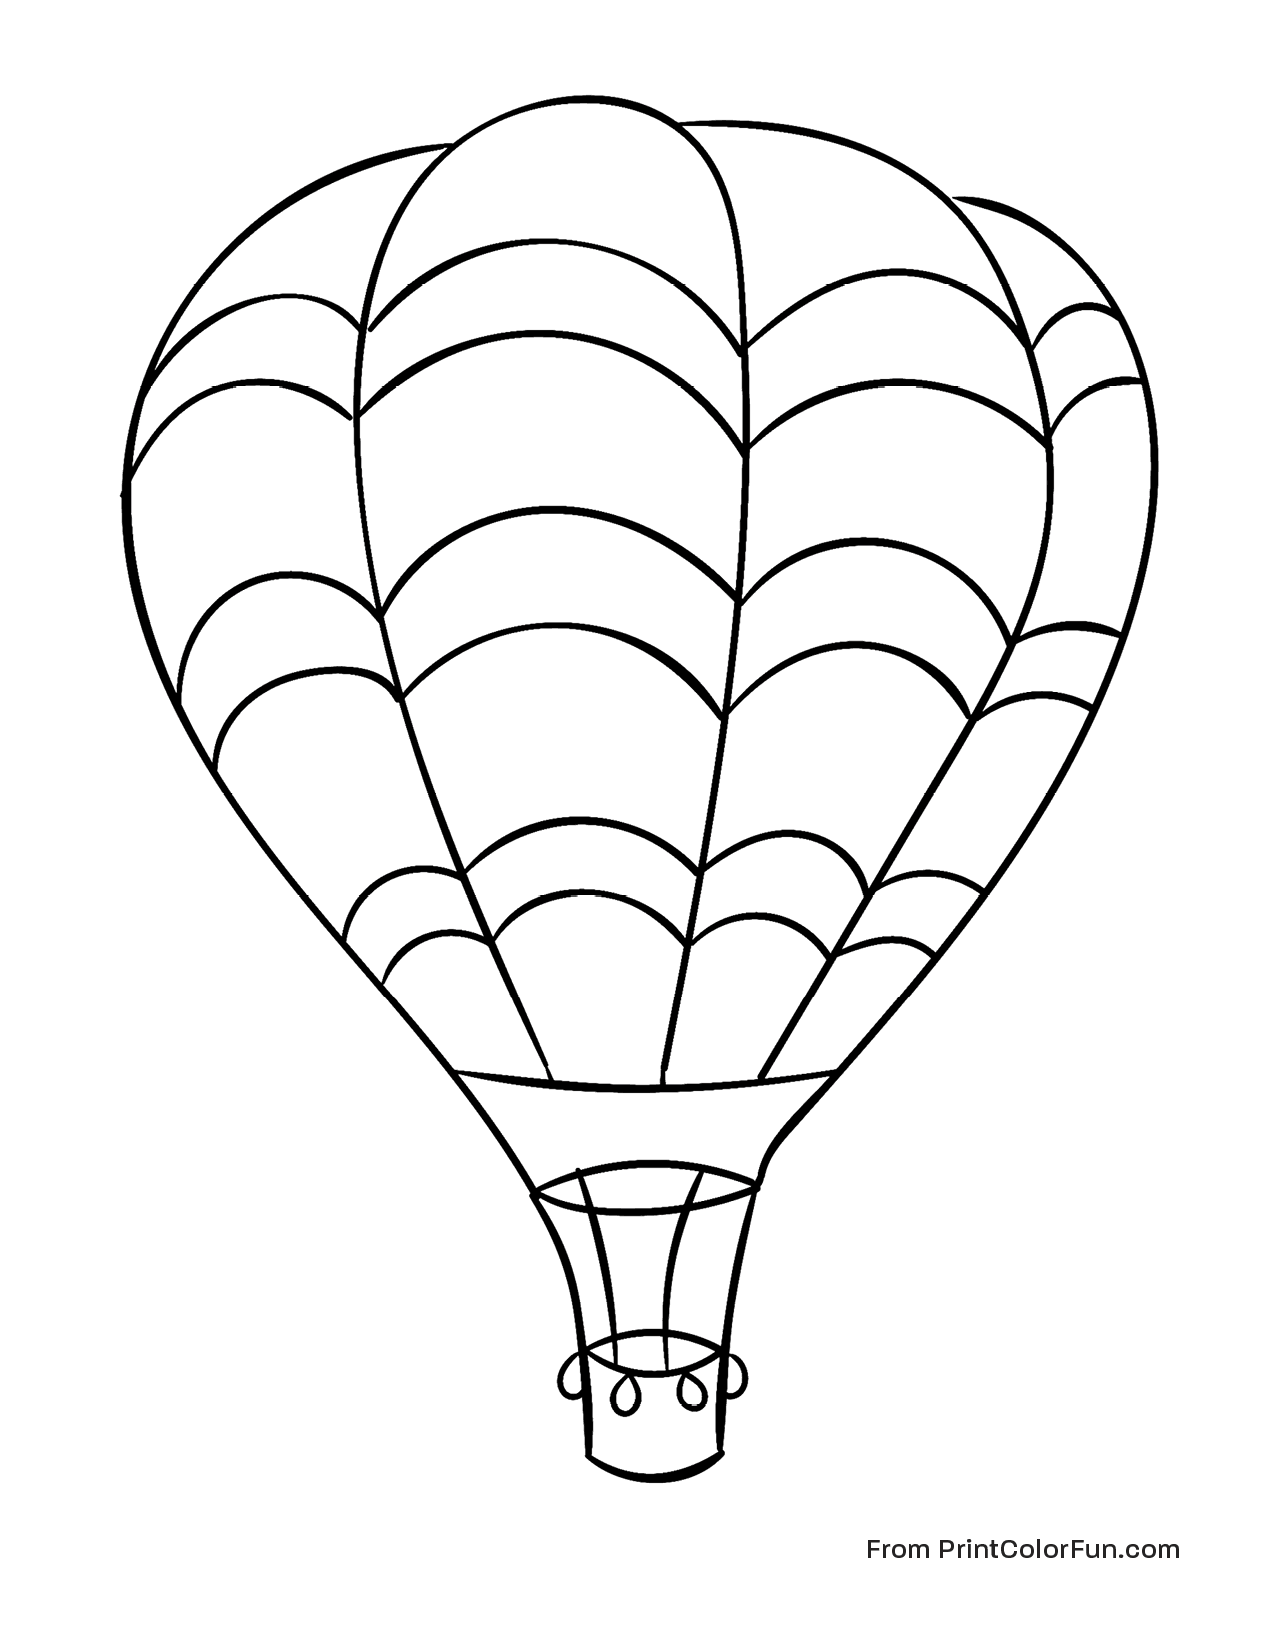 how to draw a air balloon best easy drawings for kids story handbook air draw to how a balloon